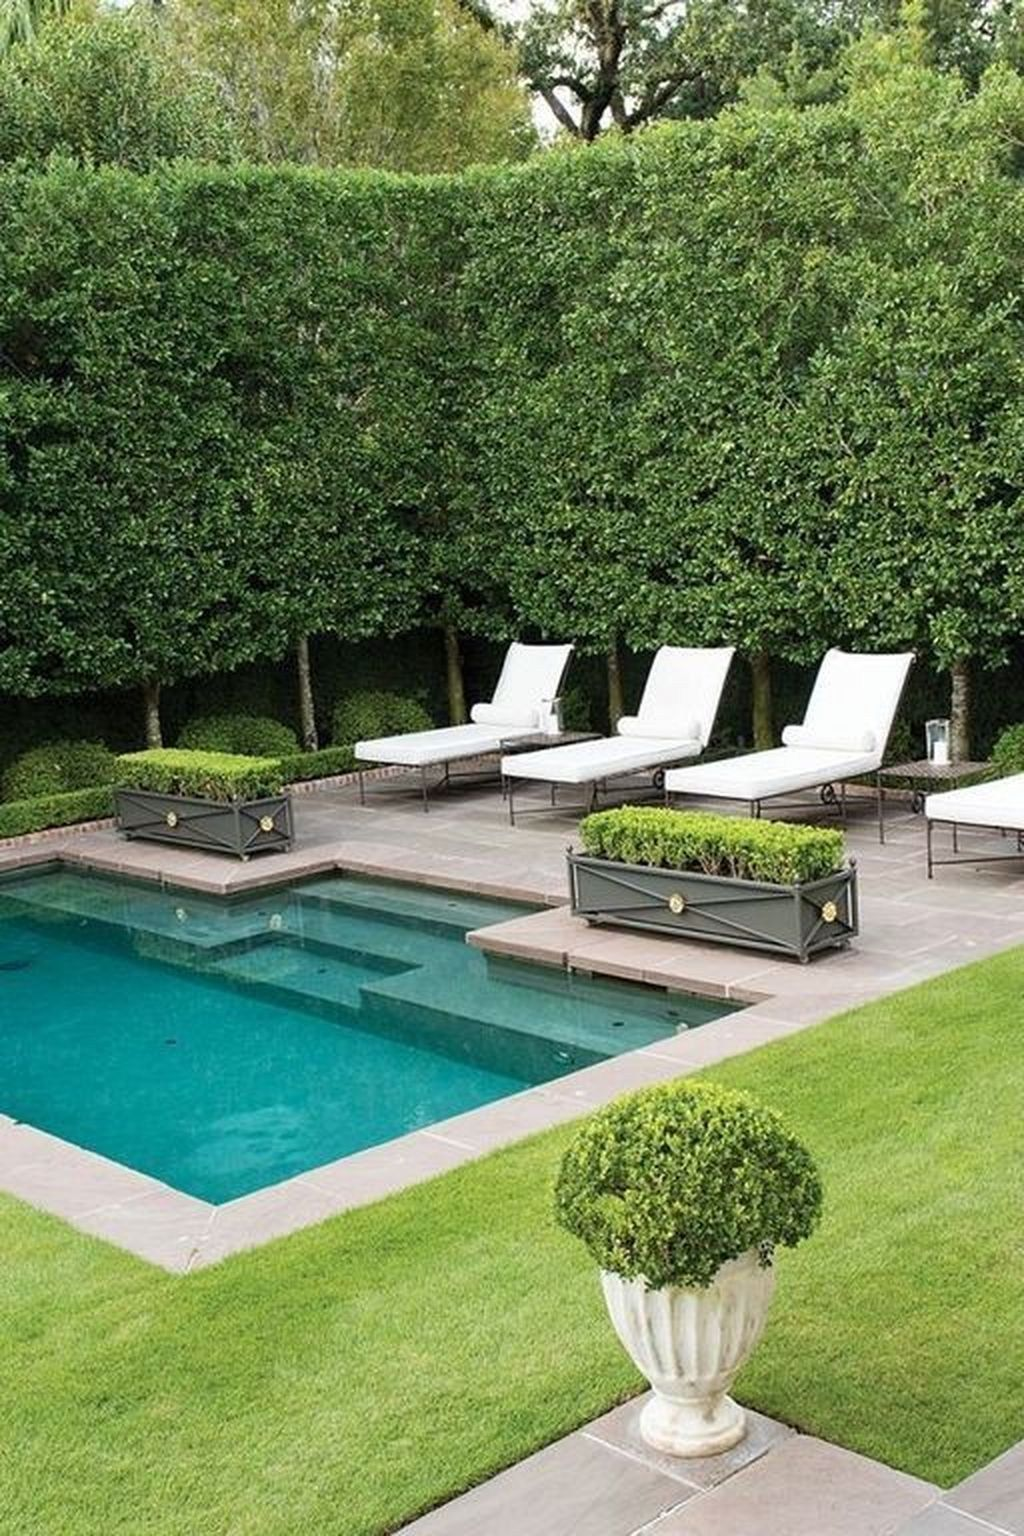 Landscaping Ideas For Backyard Swimming Pools09 Swimming Pools